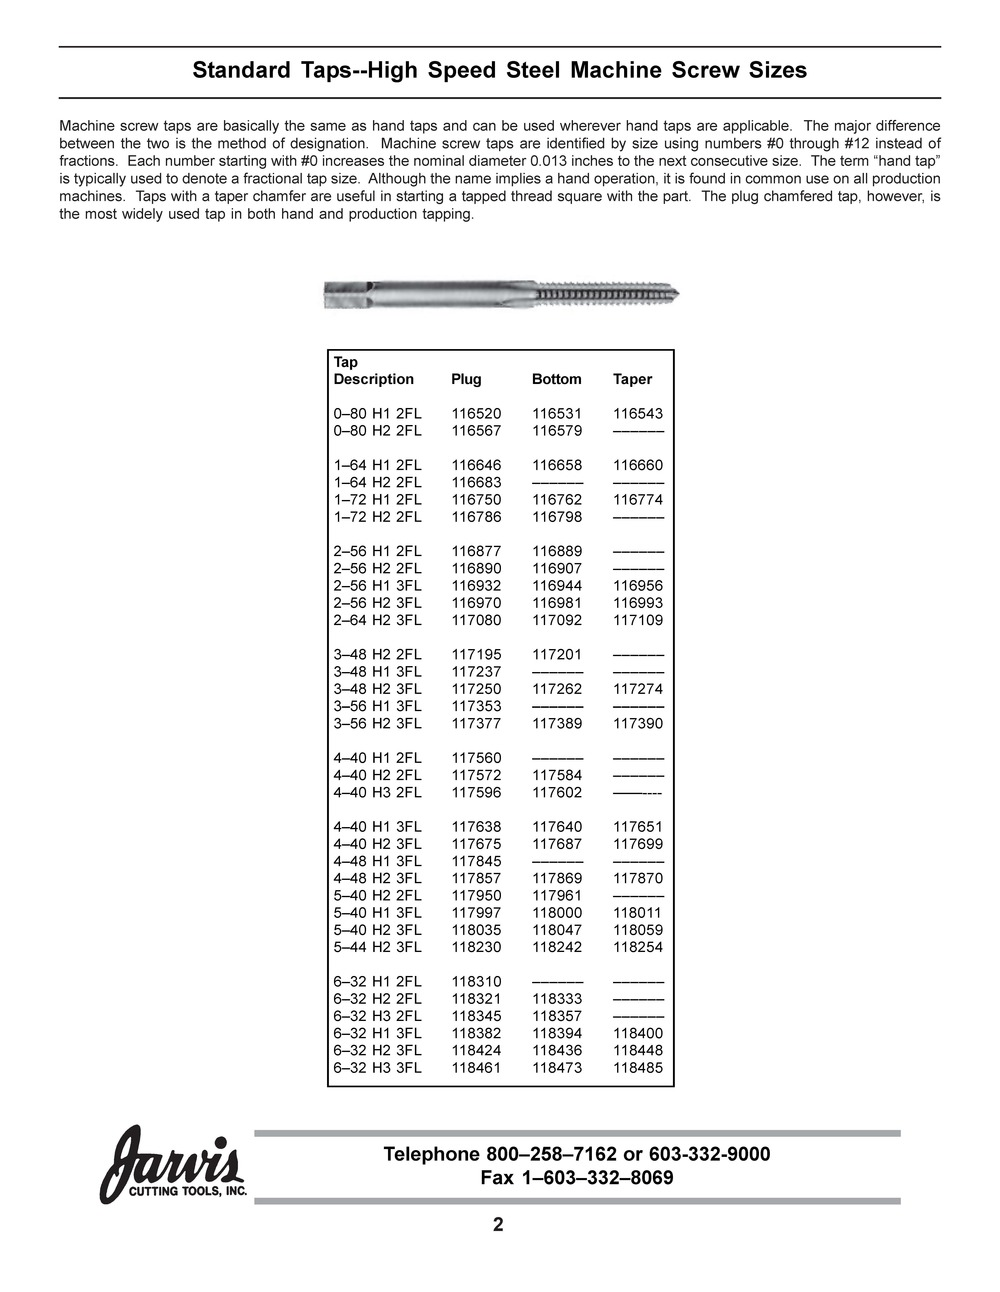 Standards-Catalog_Page_02.jpg